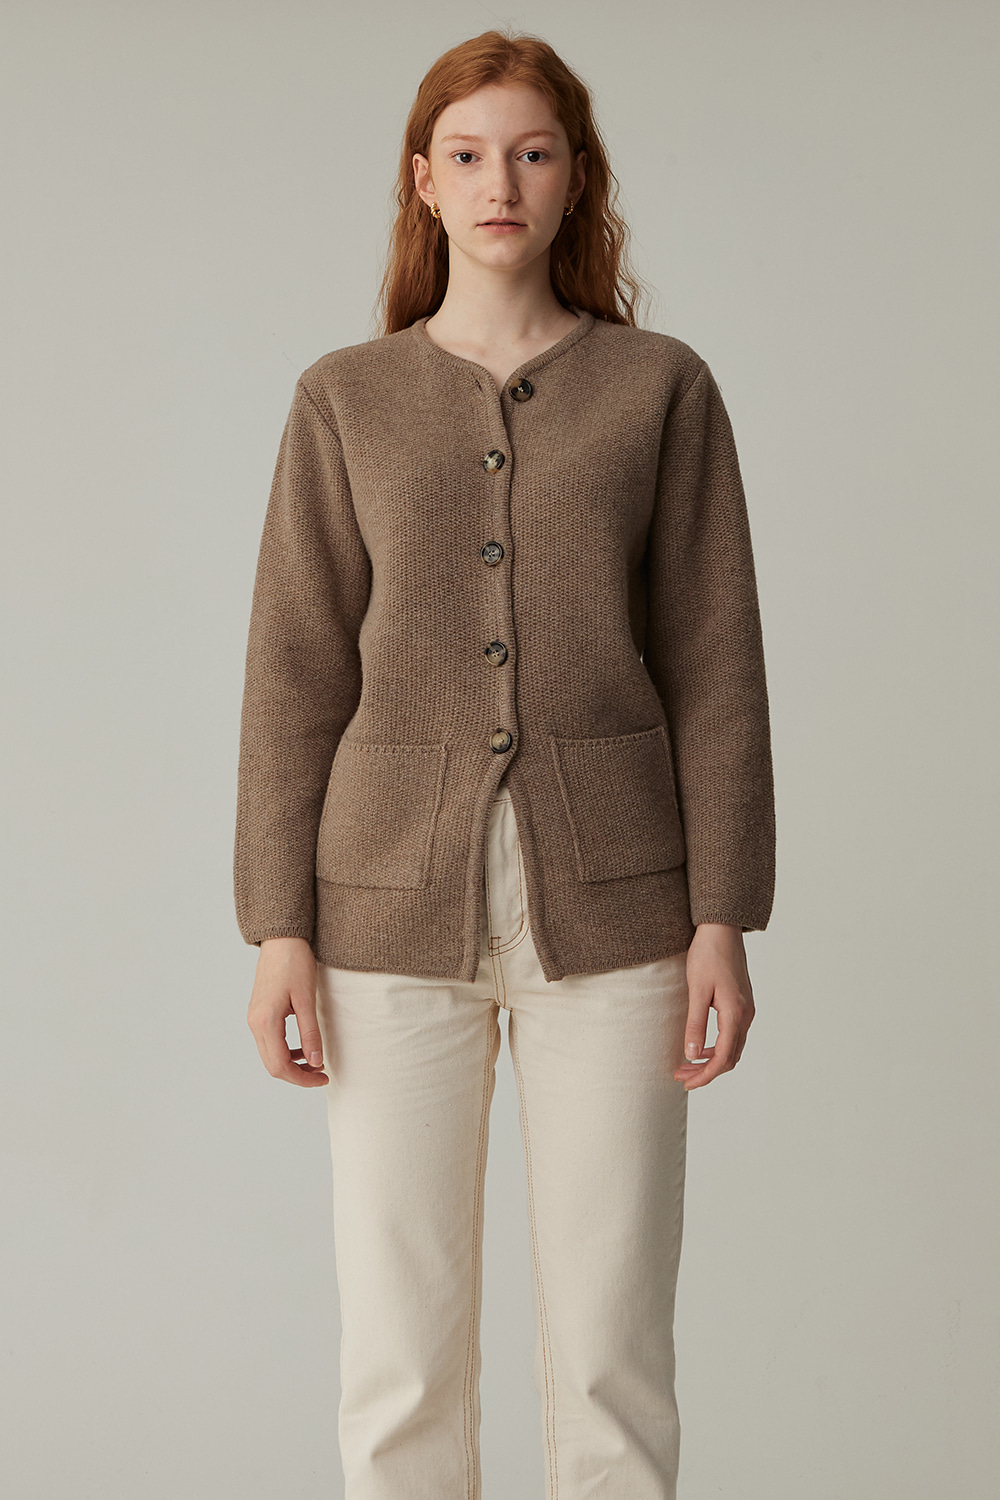 TURK WOOL JACKET (BEIGE)